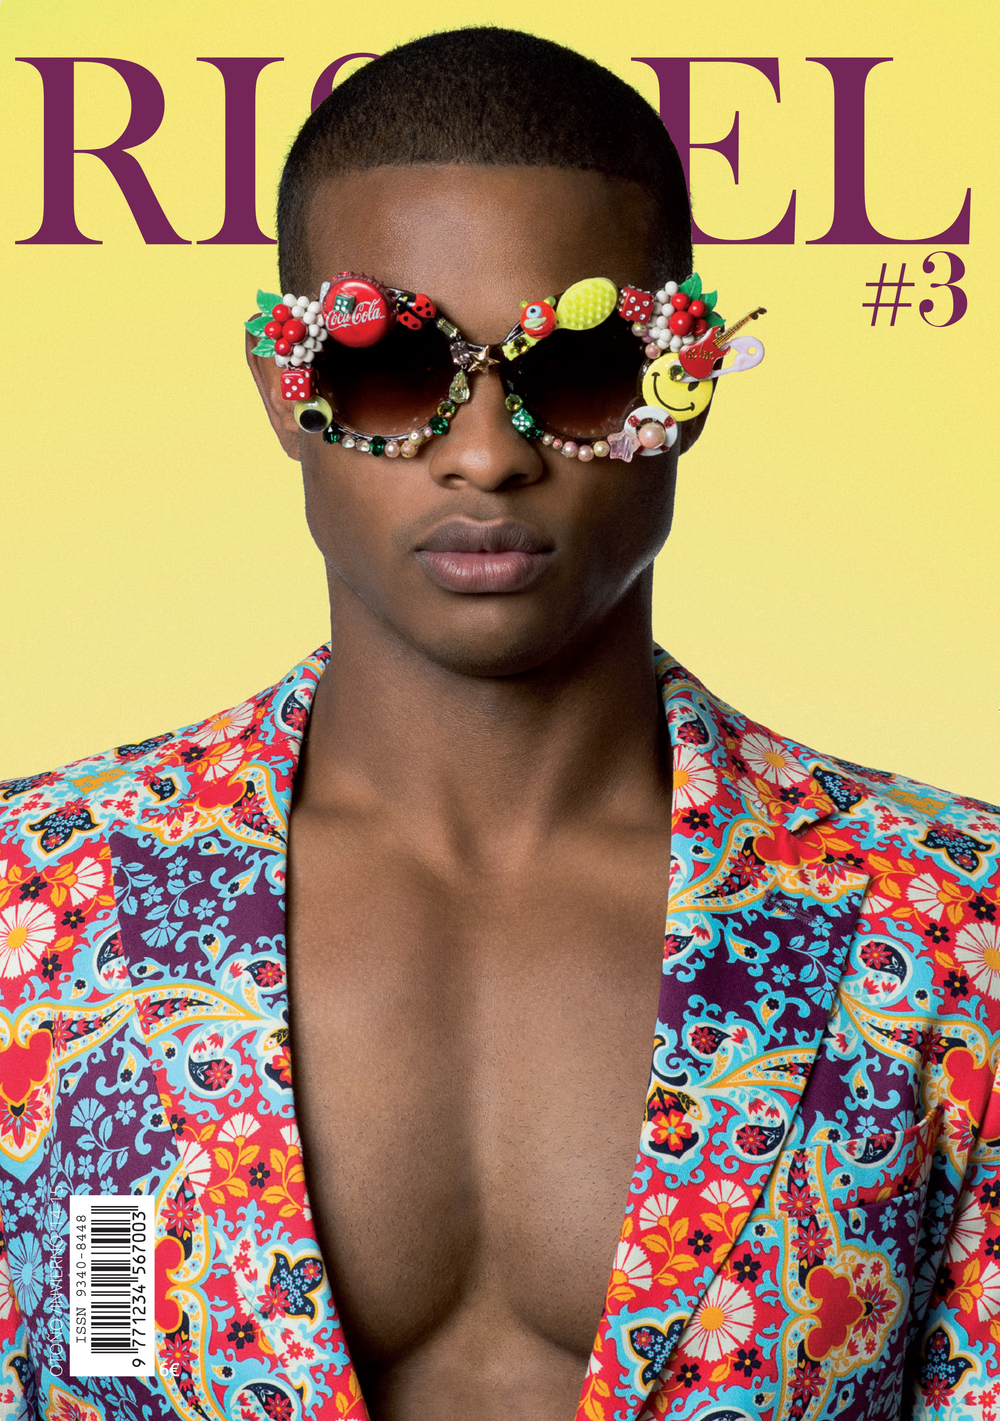 Risbel Magazine Cover